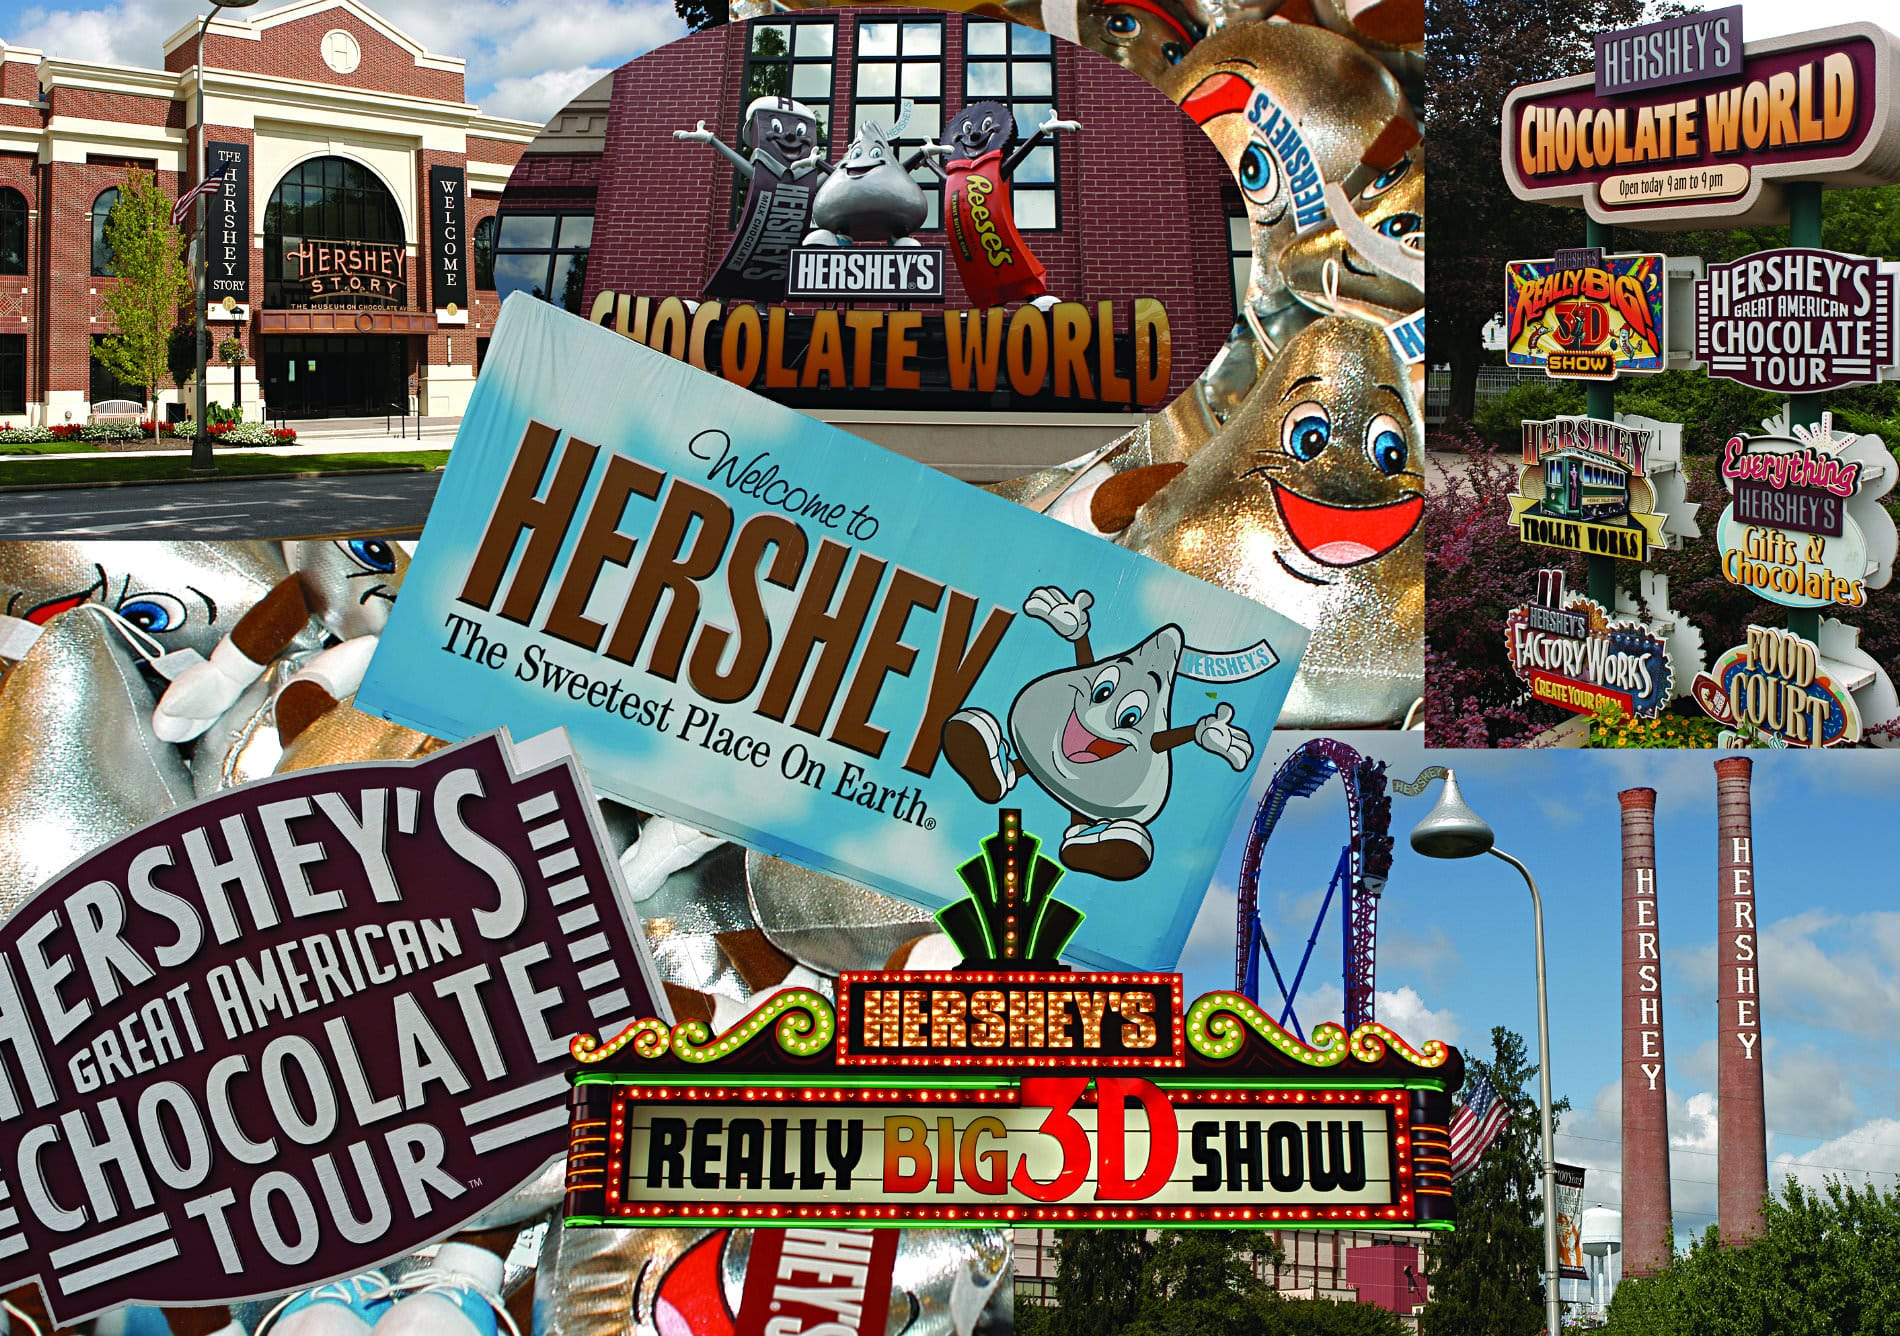 Picture of the Hershey logo.